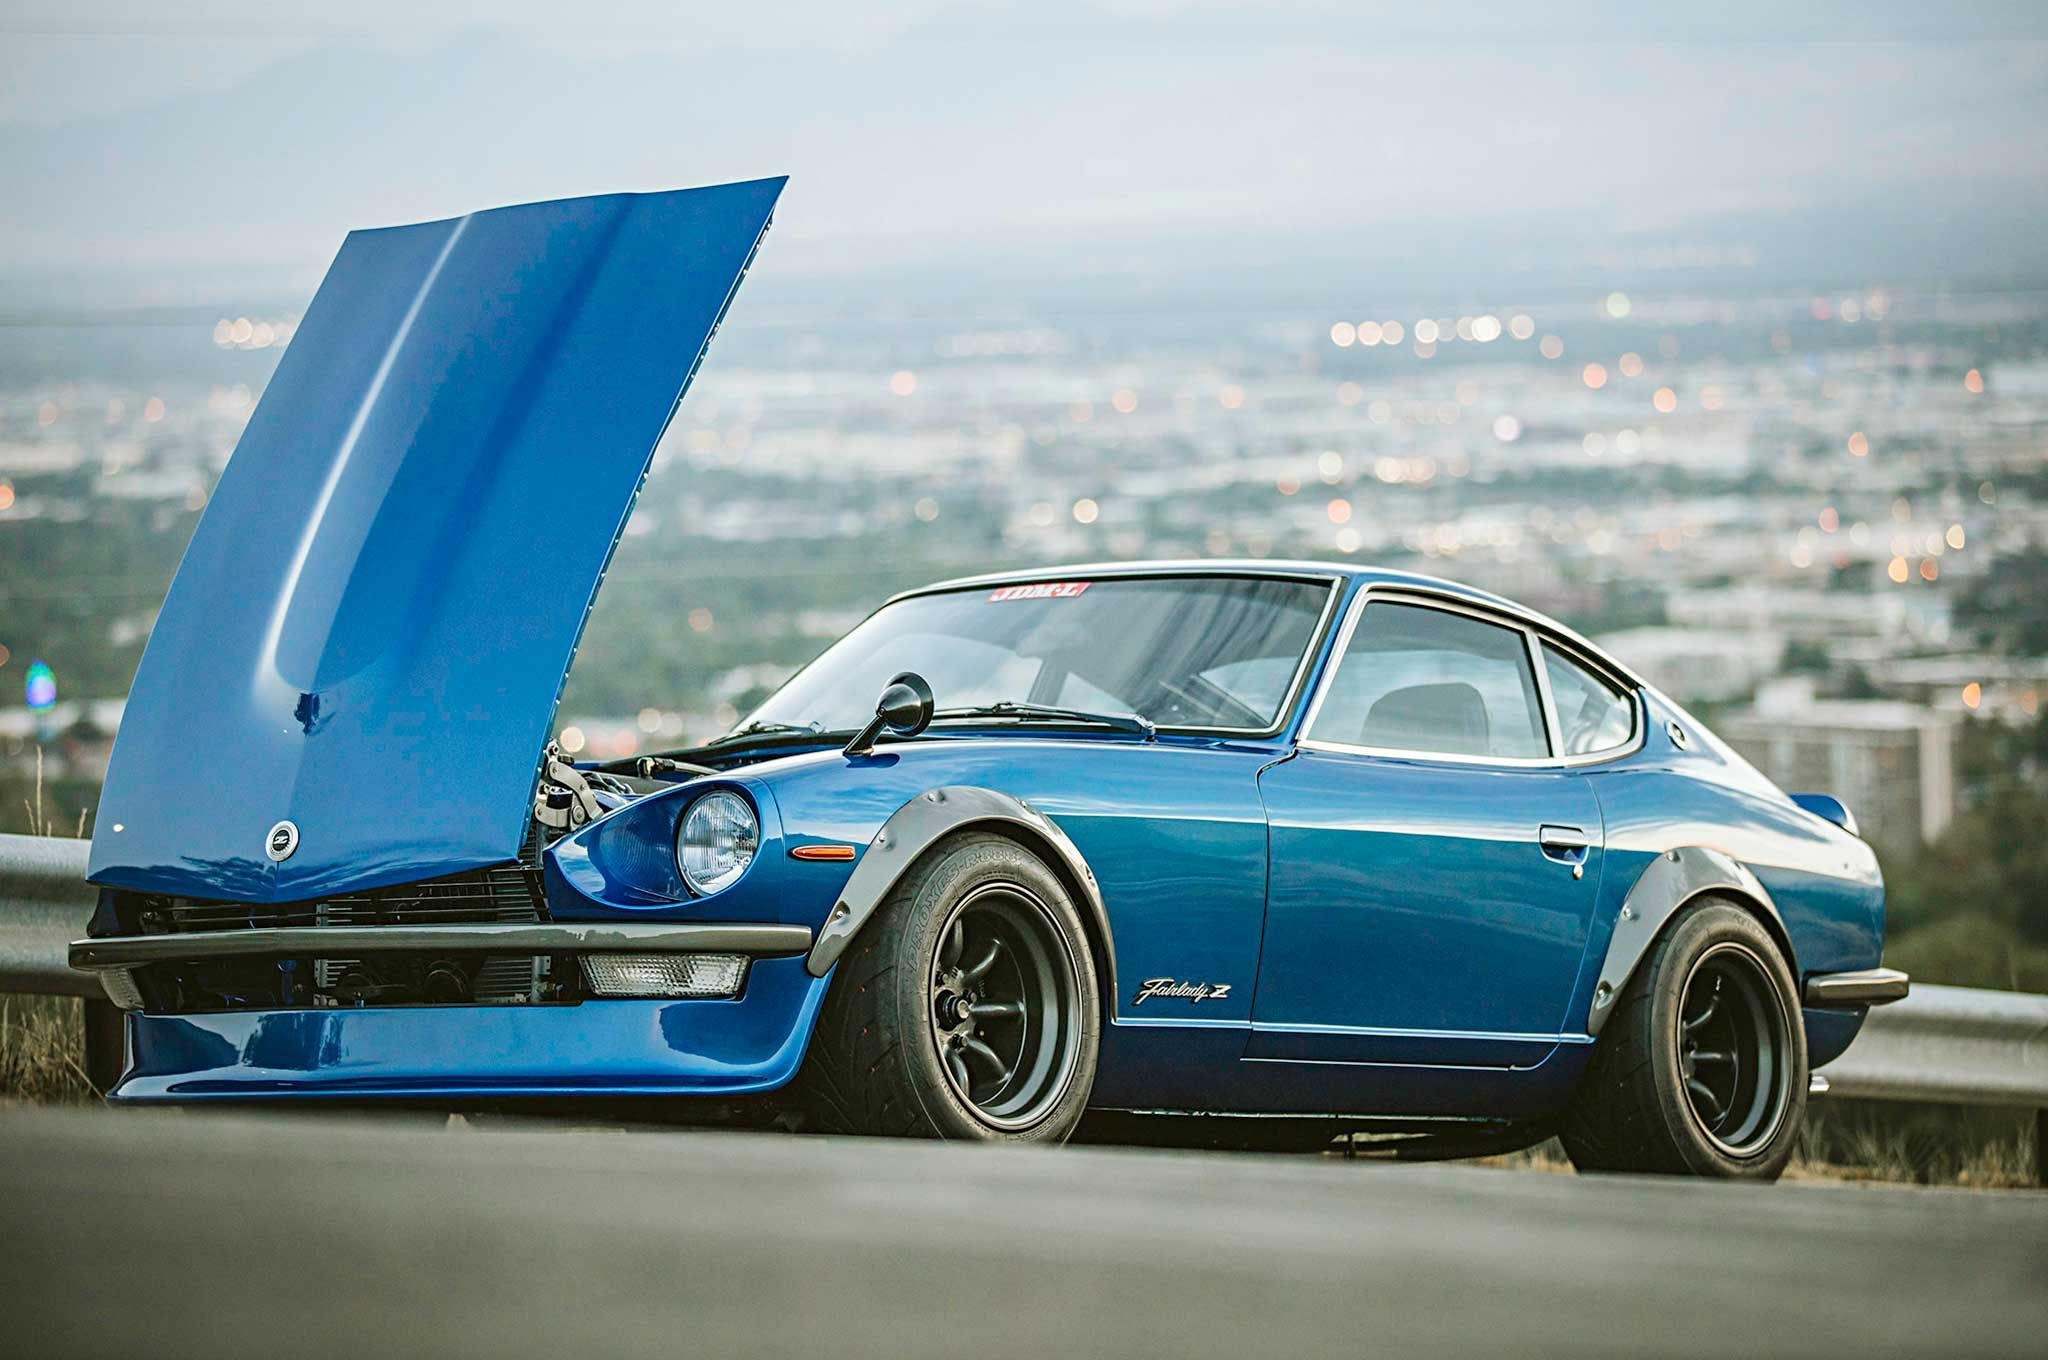 Datsun 240z | Nissan / Datsun Z | Pinterest | Datsun 240z, Cars And  Japanese Cars